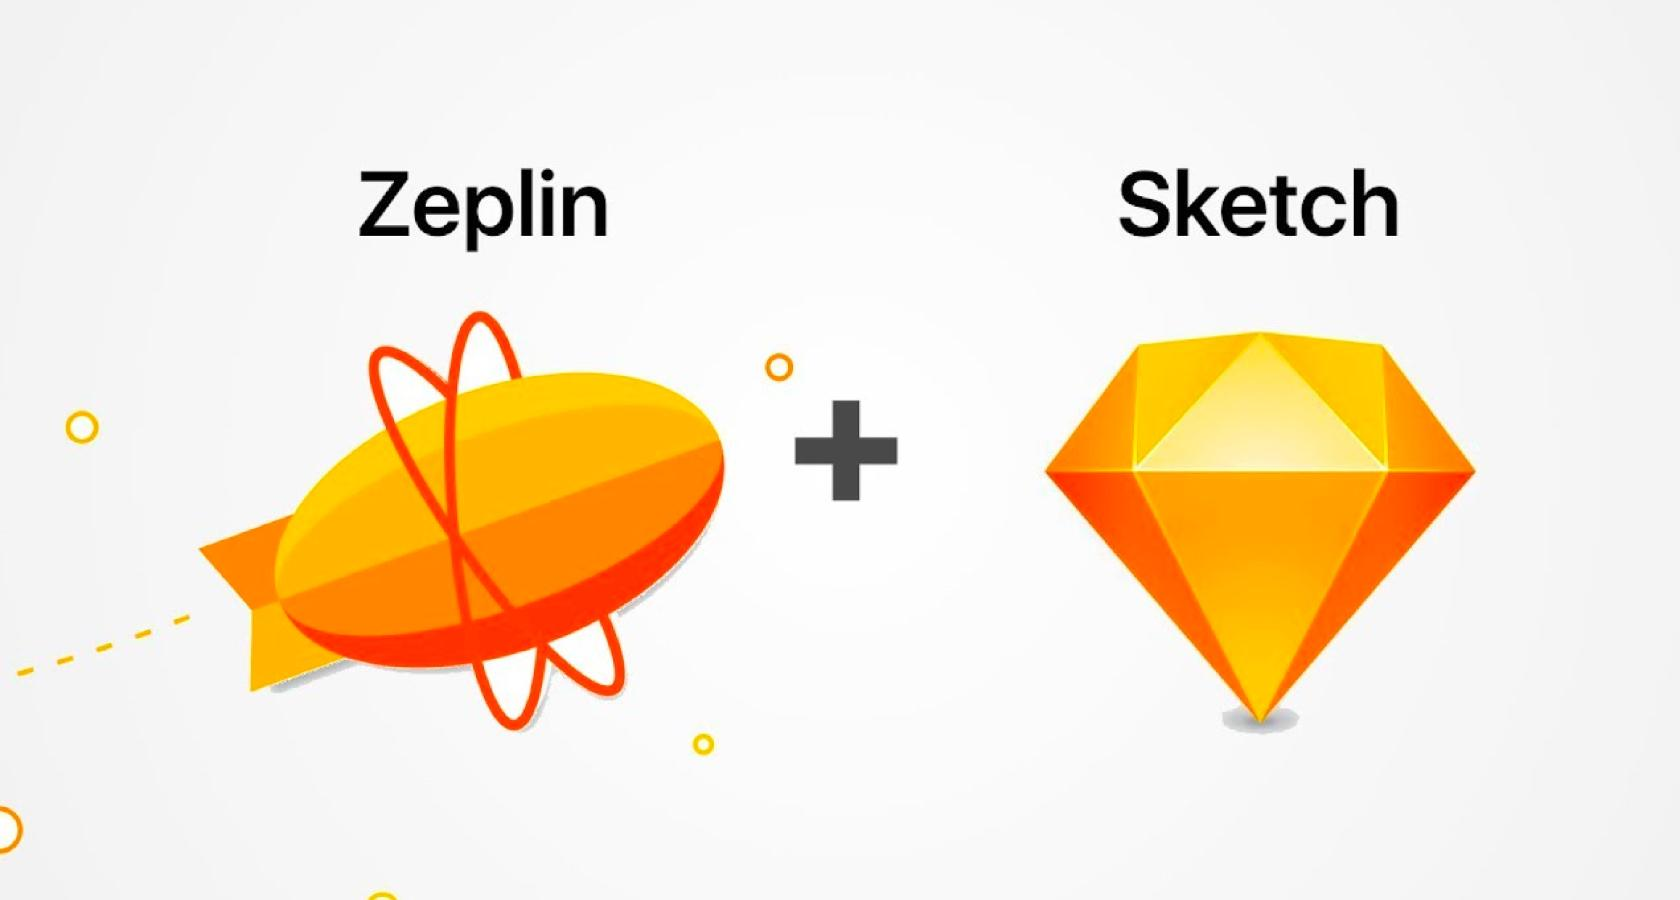 Sketch handoff: Zeplin and Sketch software working together